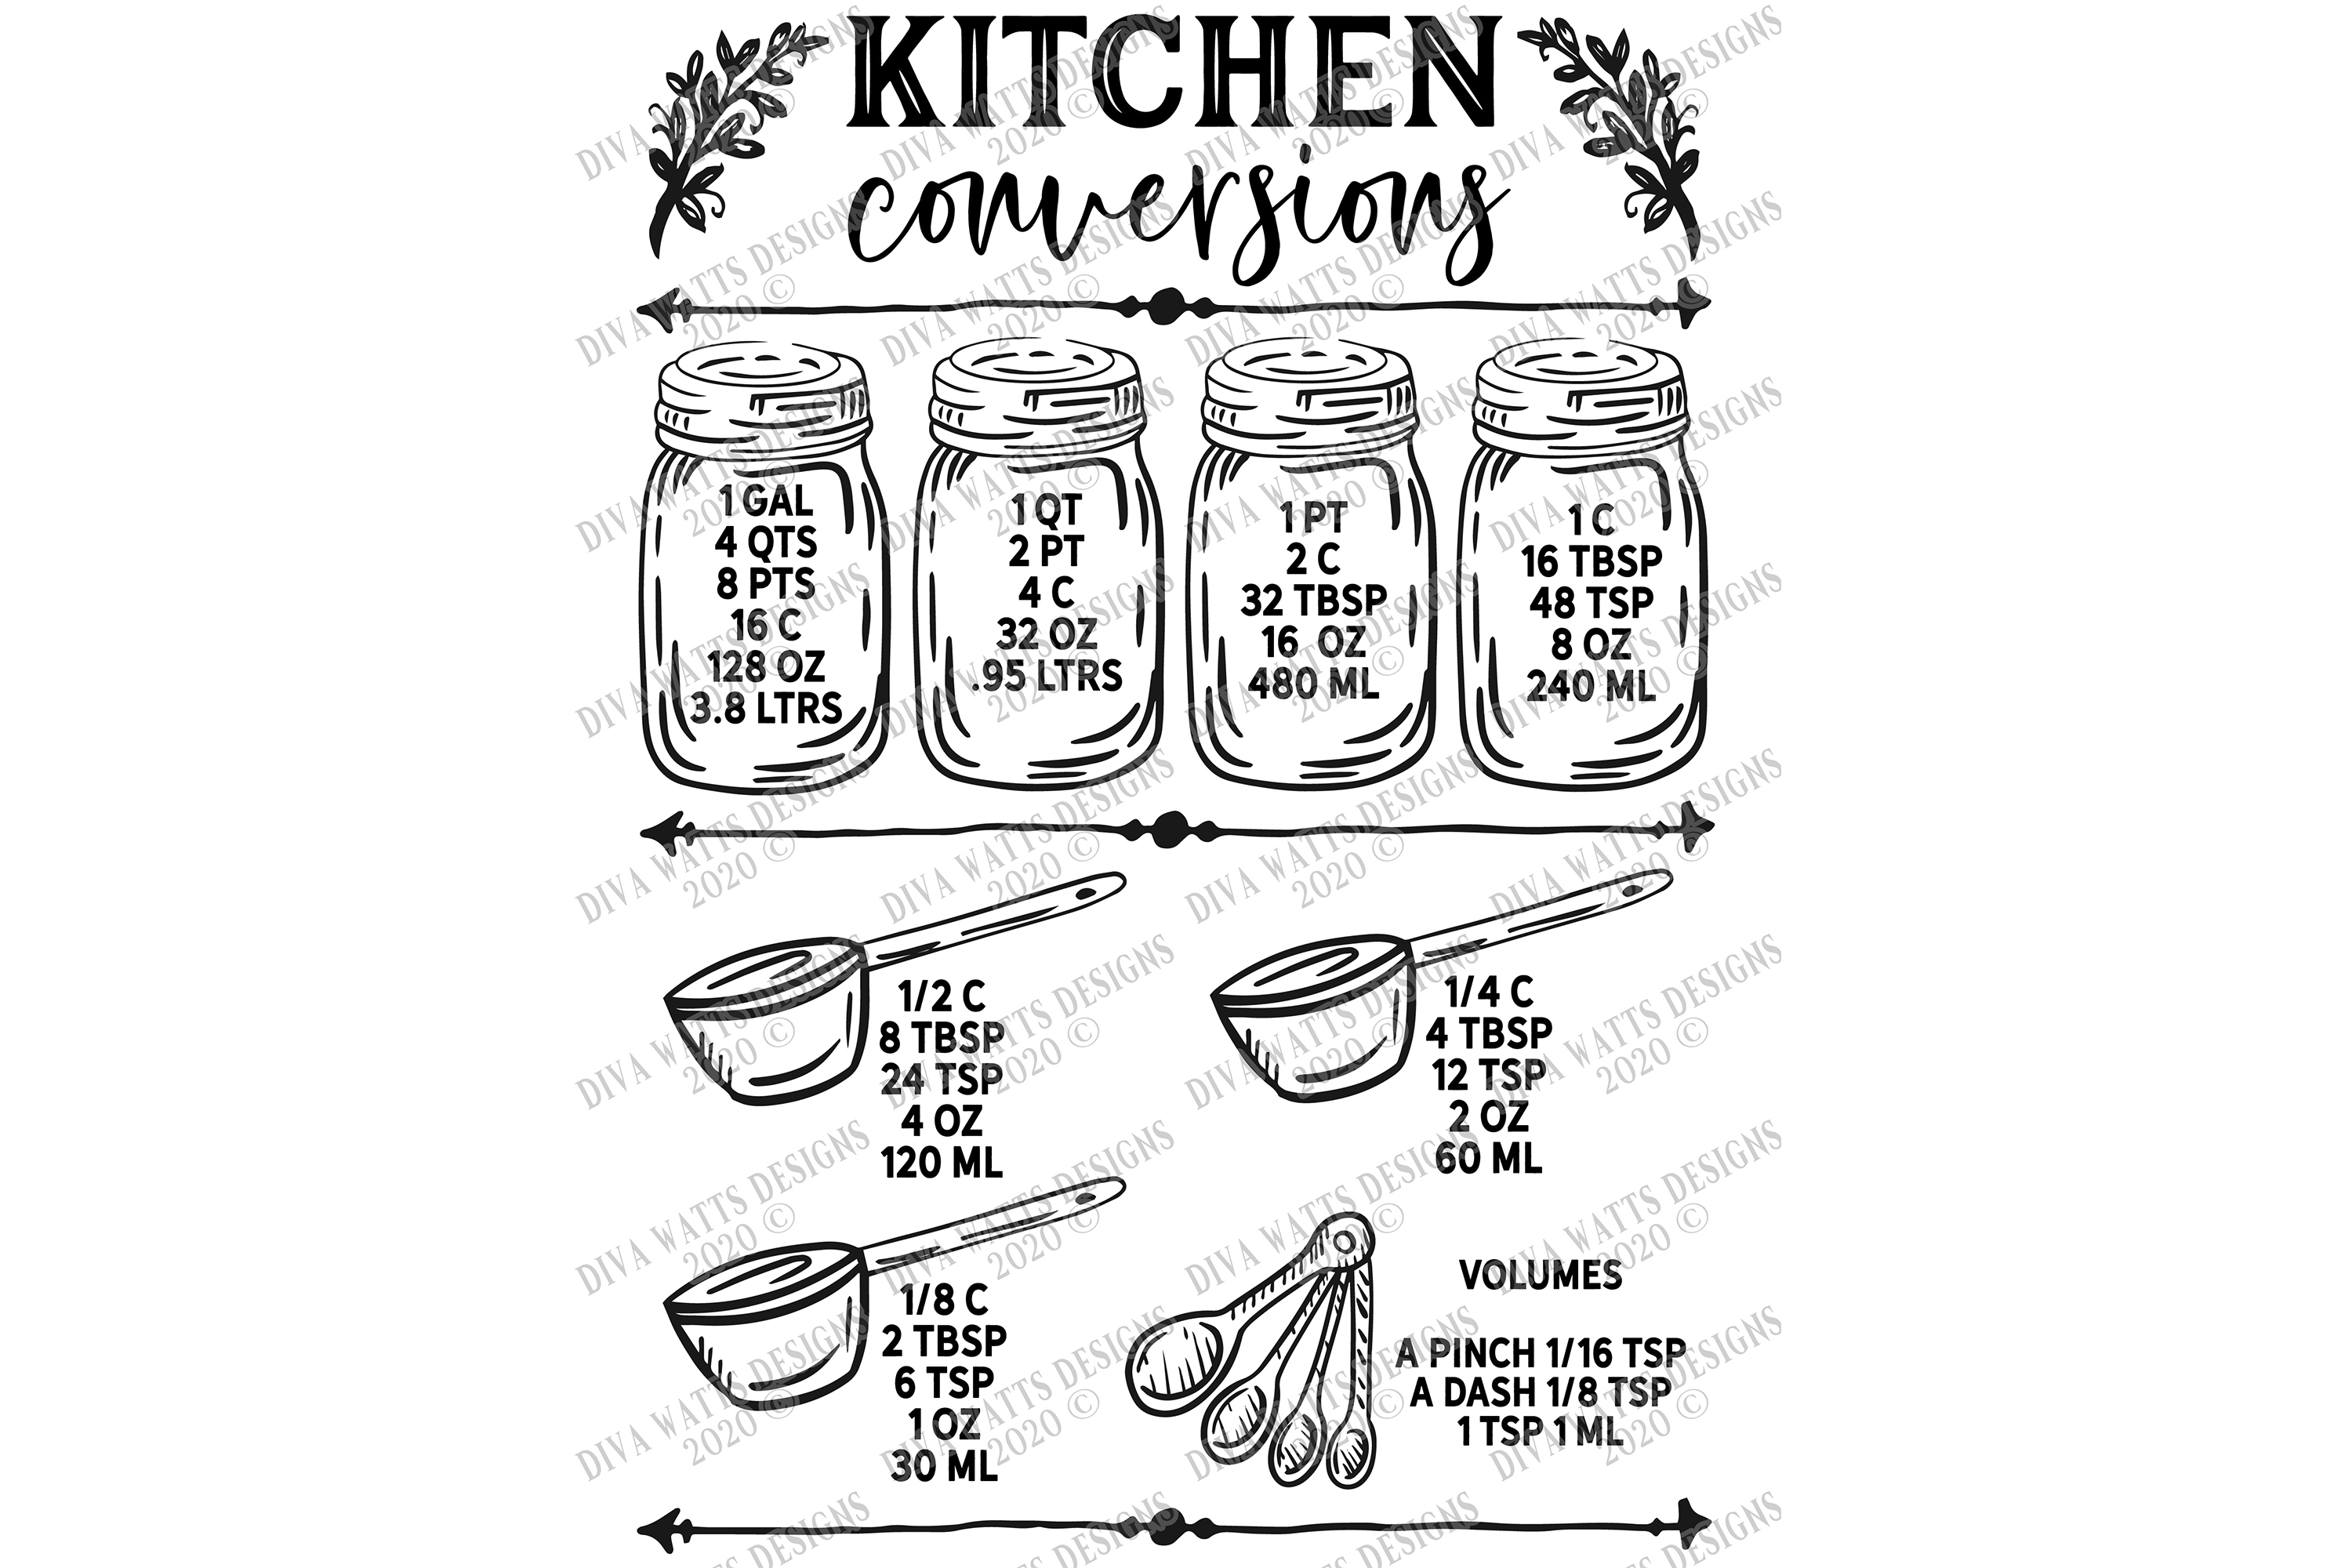 Download Kitchen Conversions Chart - Cutting File - Printable - SVG